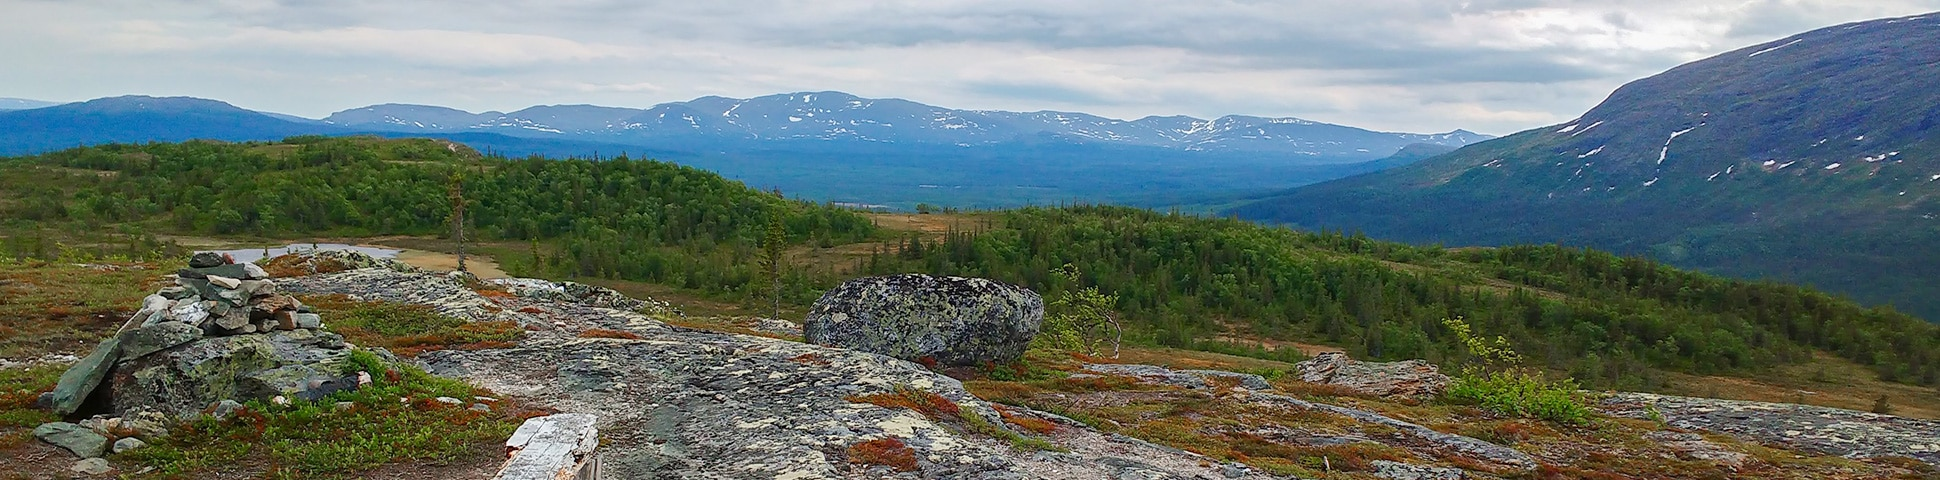 Panorama of Platåleden - Hållvallens hike in Åre, Sweden